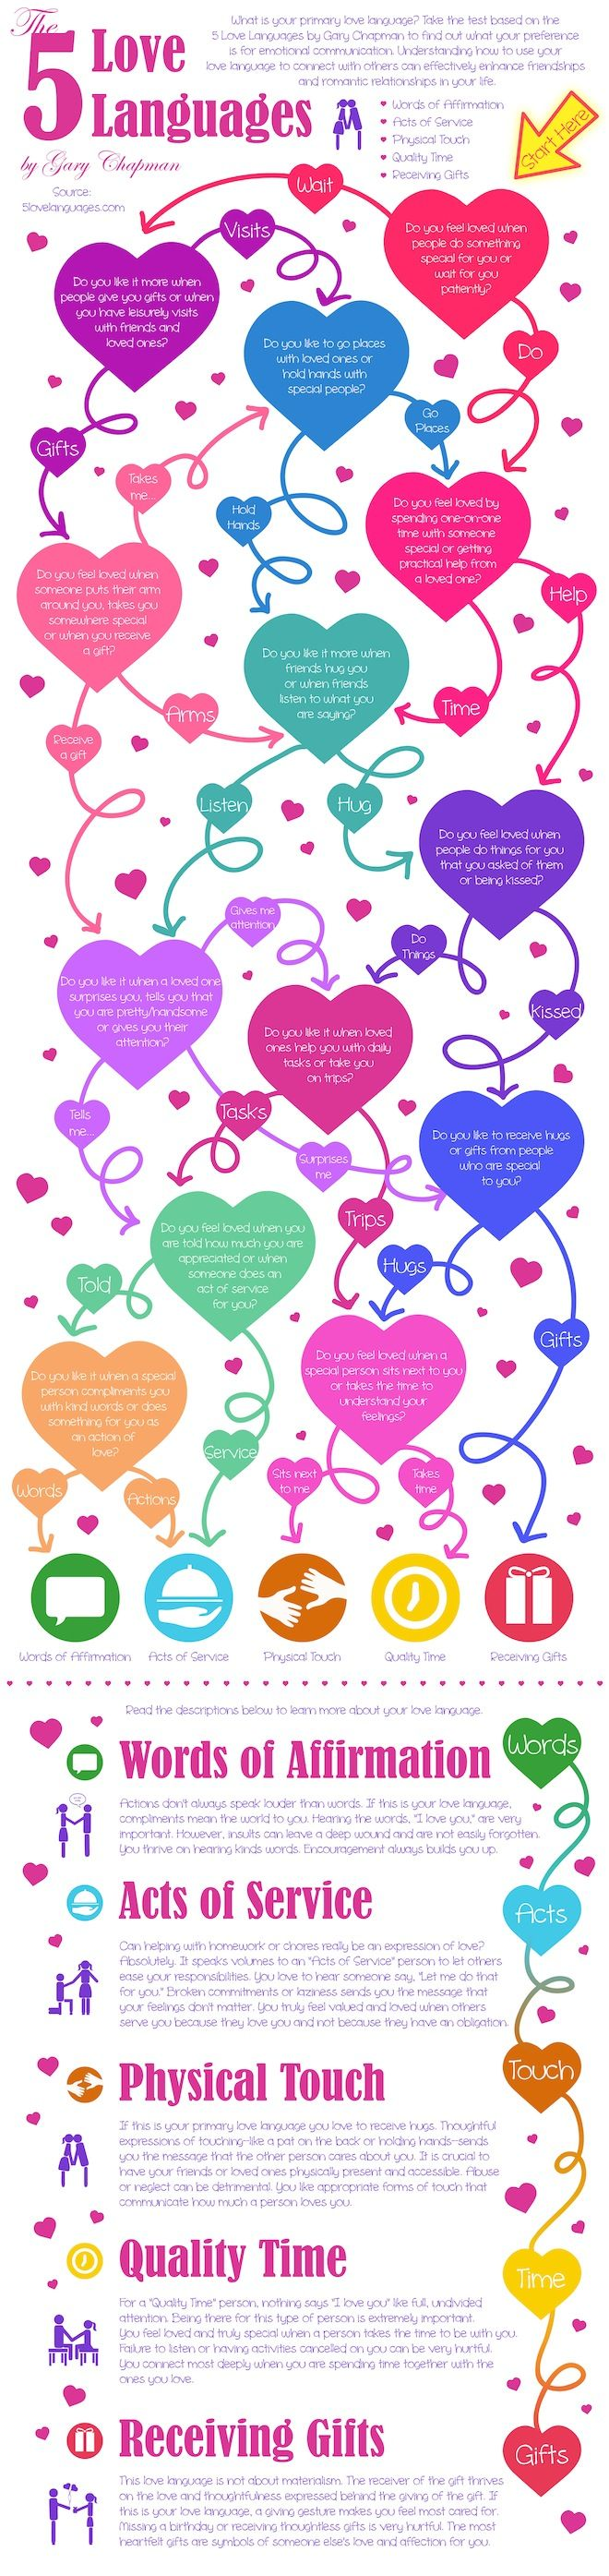 Test your love language. From the book The 5 Love Languages by Gary Chapman. #LoveLanguage #Infograph